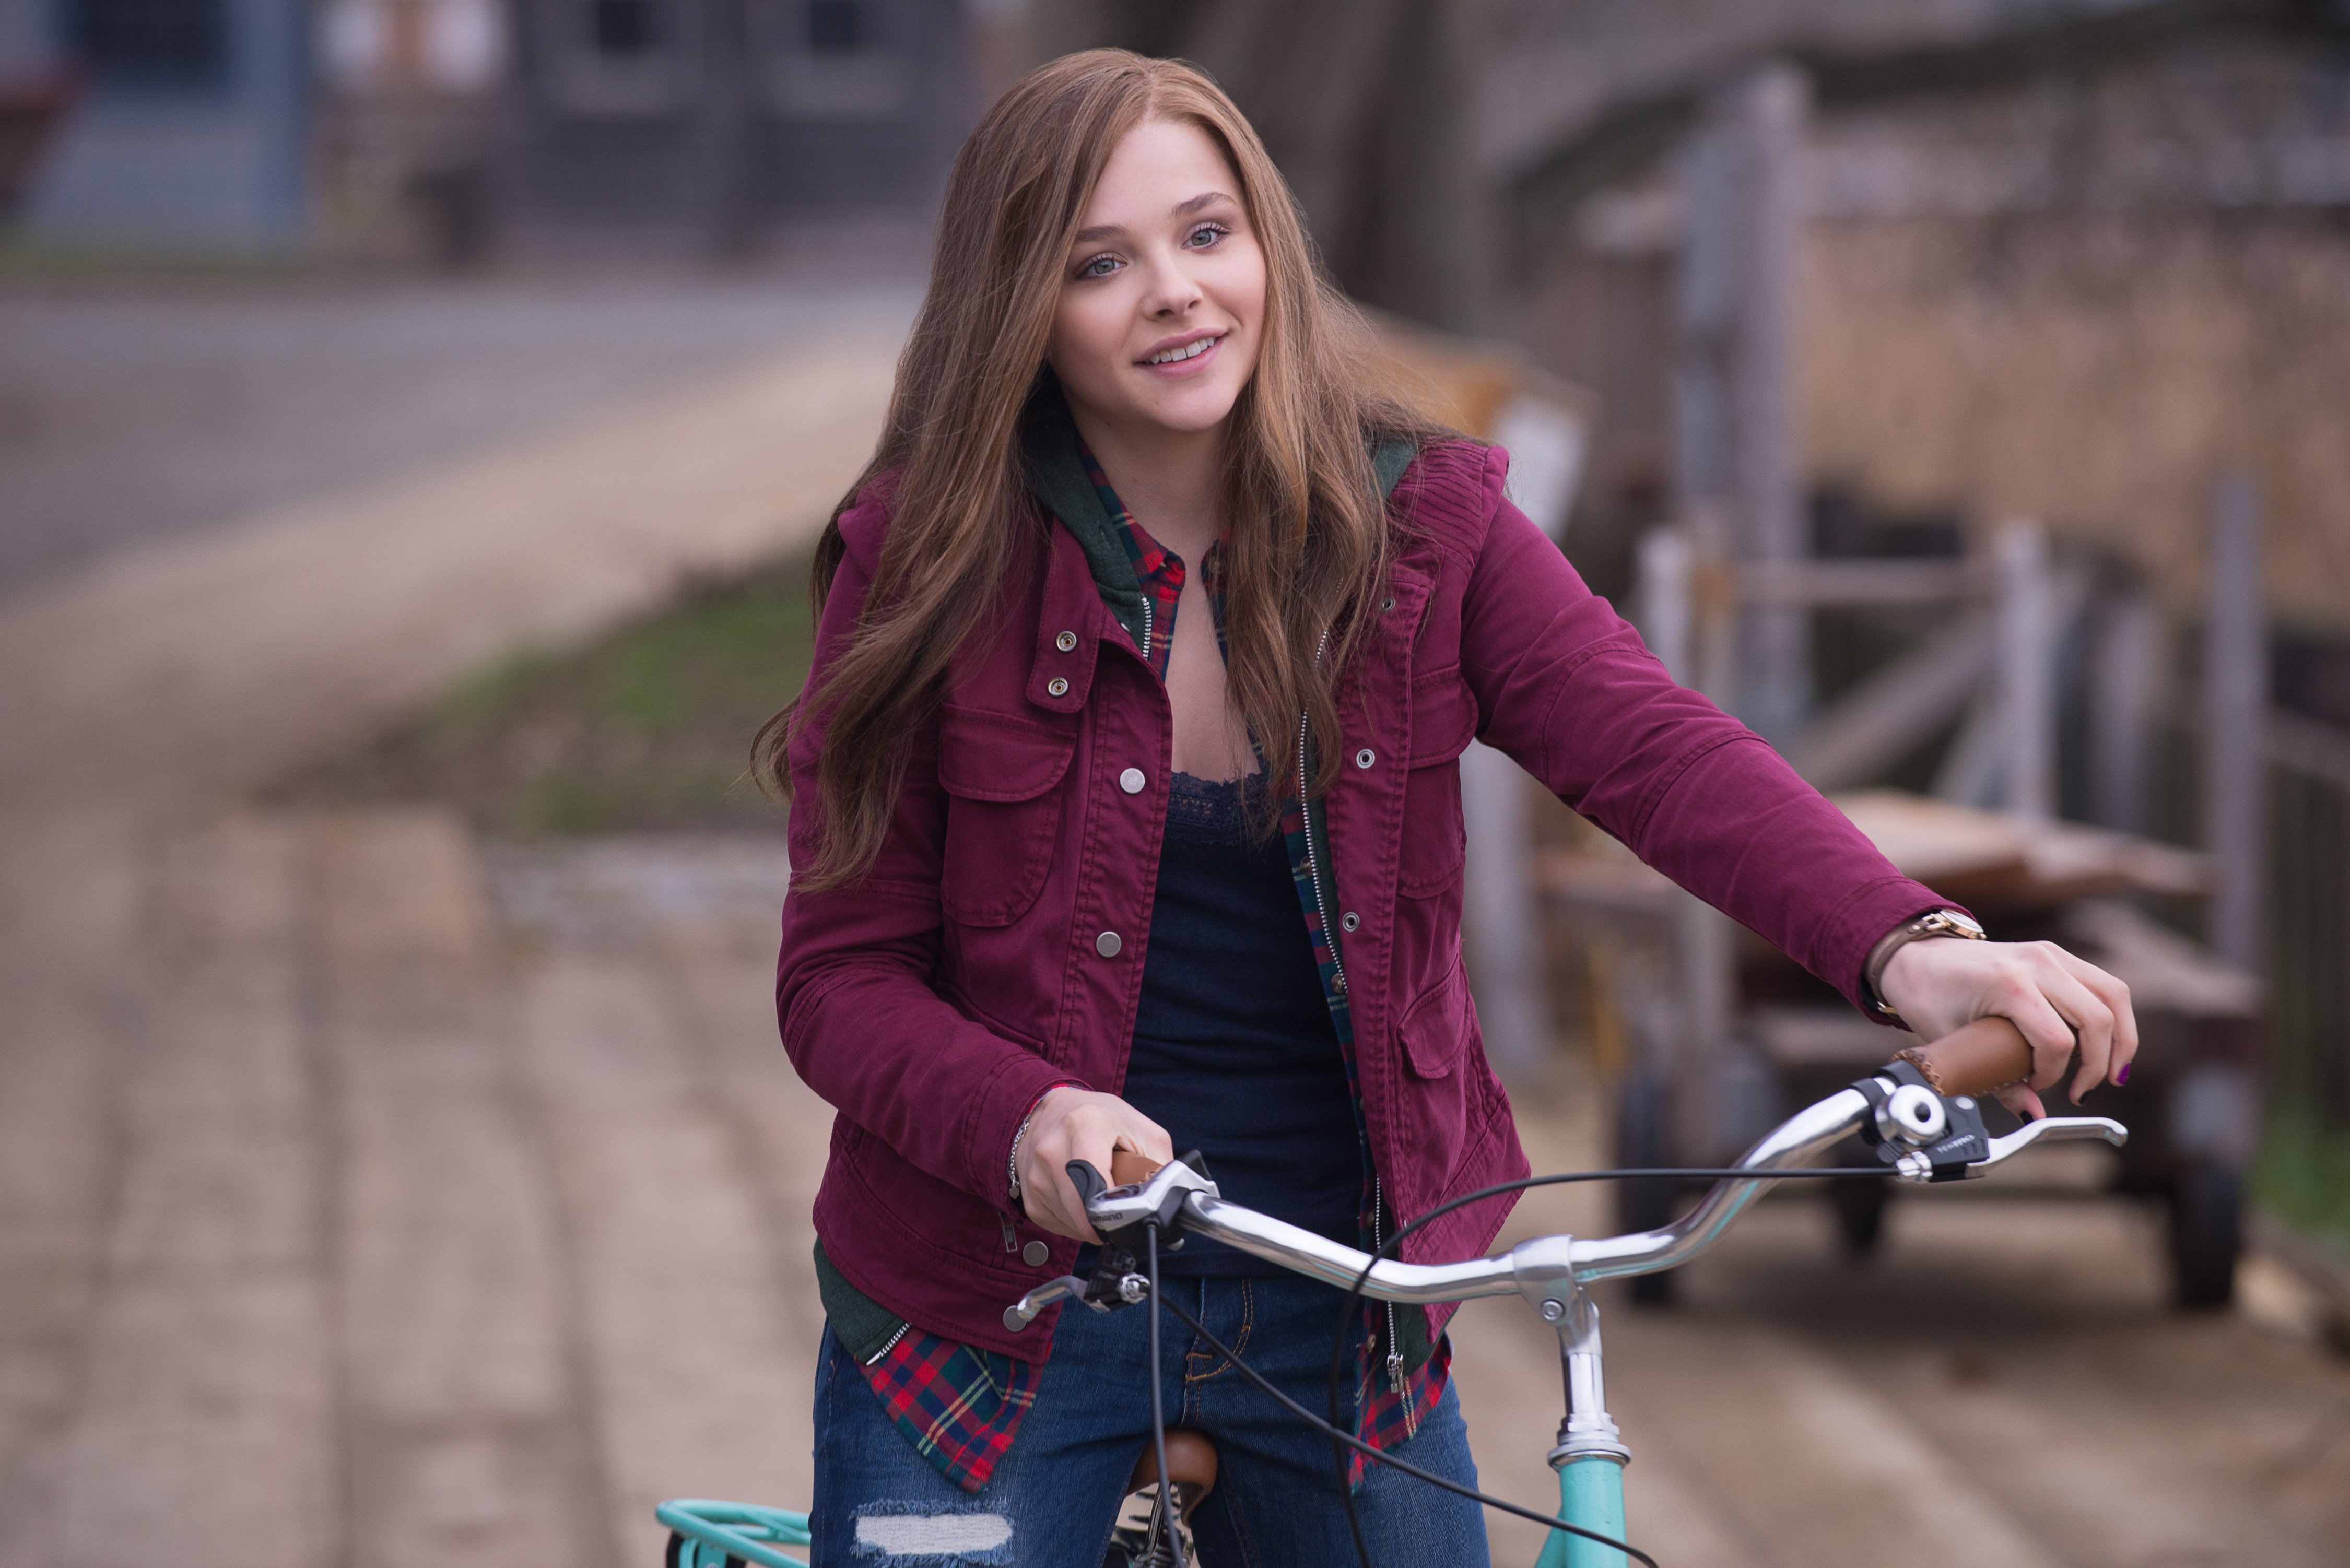 Chloë Grace Moretz plays Mia Hall in If I Stay.